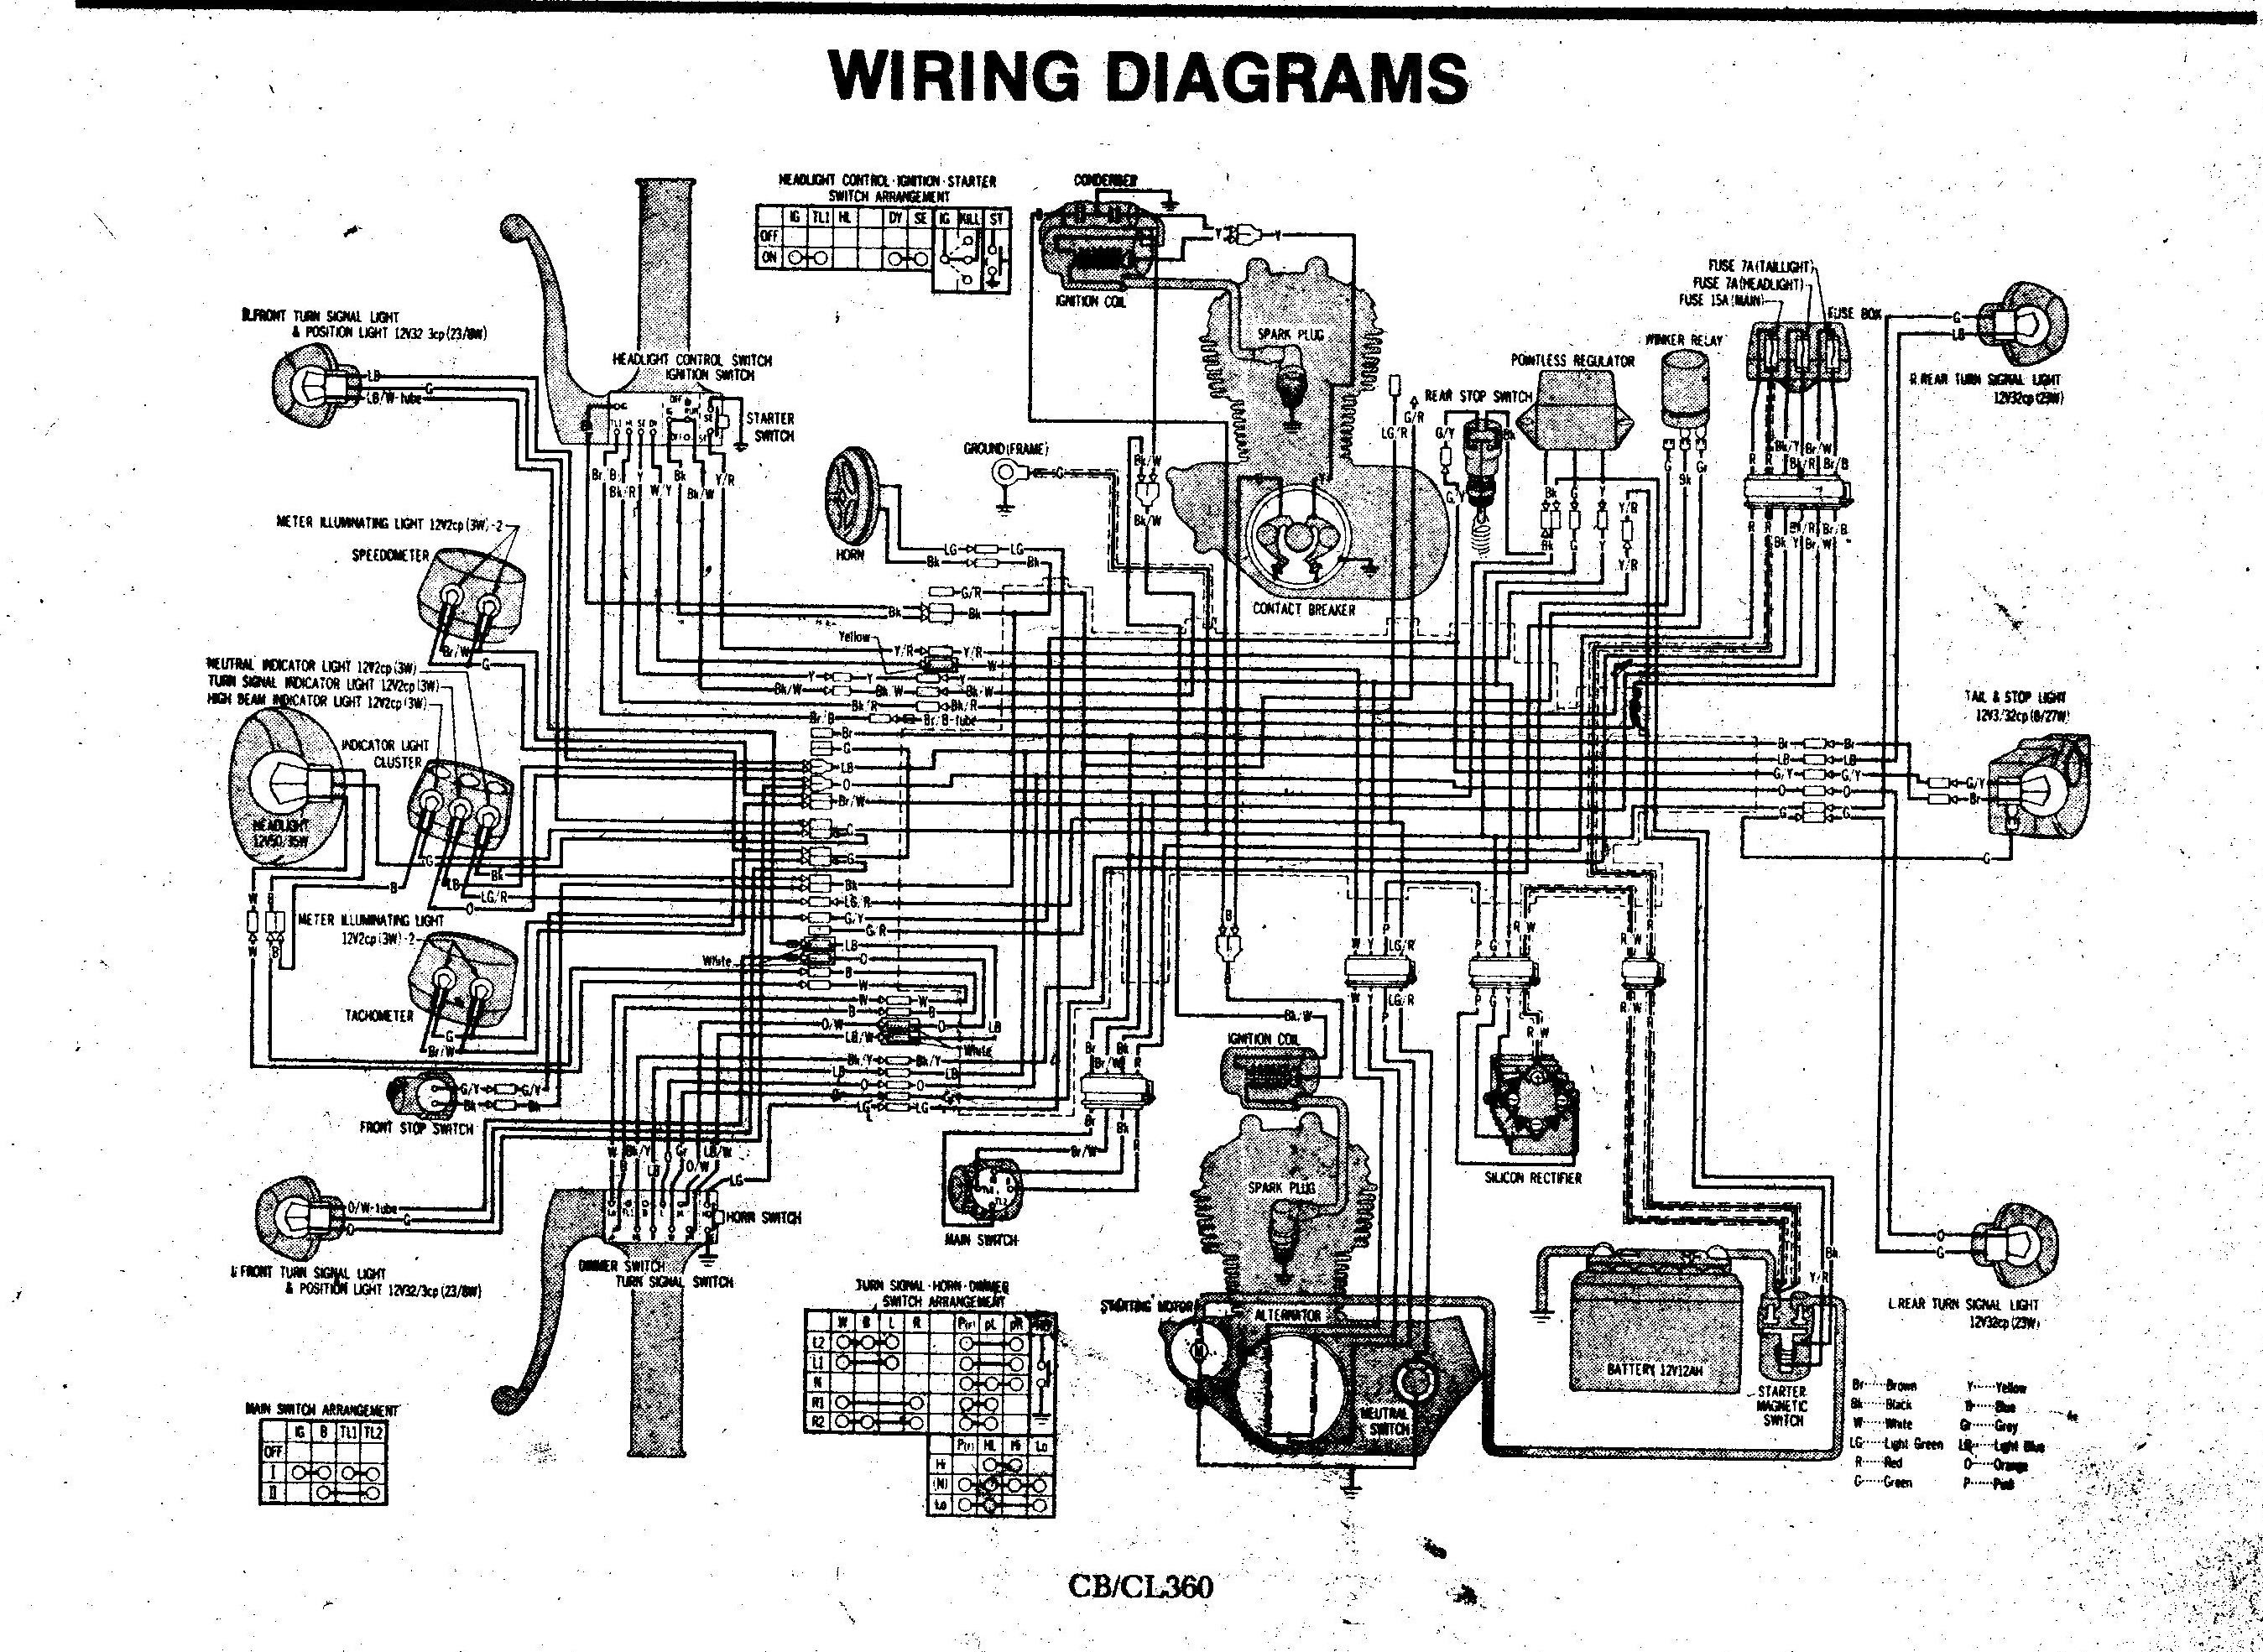 1975 Honda Cl360 Wiring Diagram - WIRE Center •